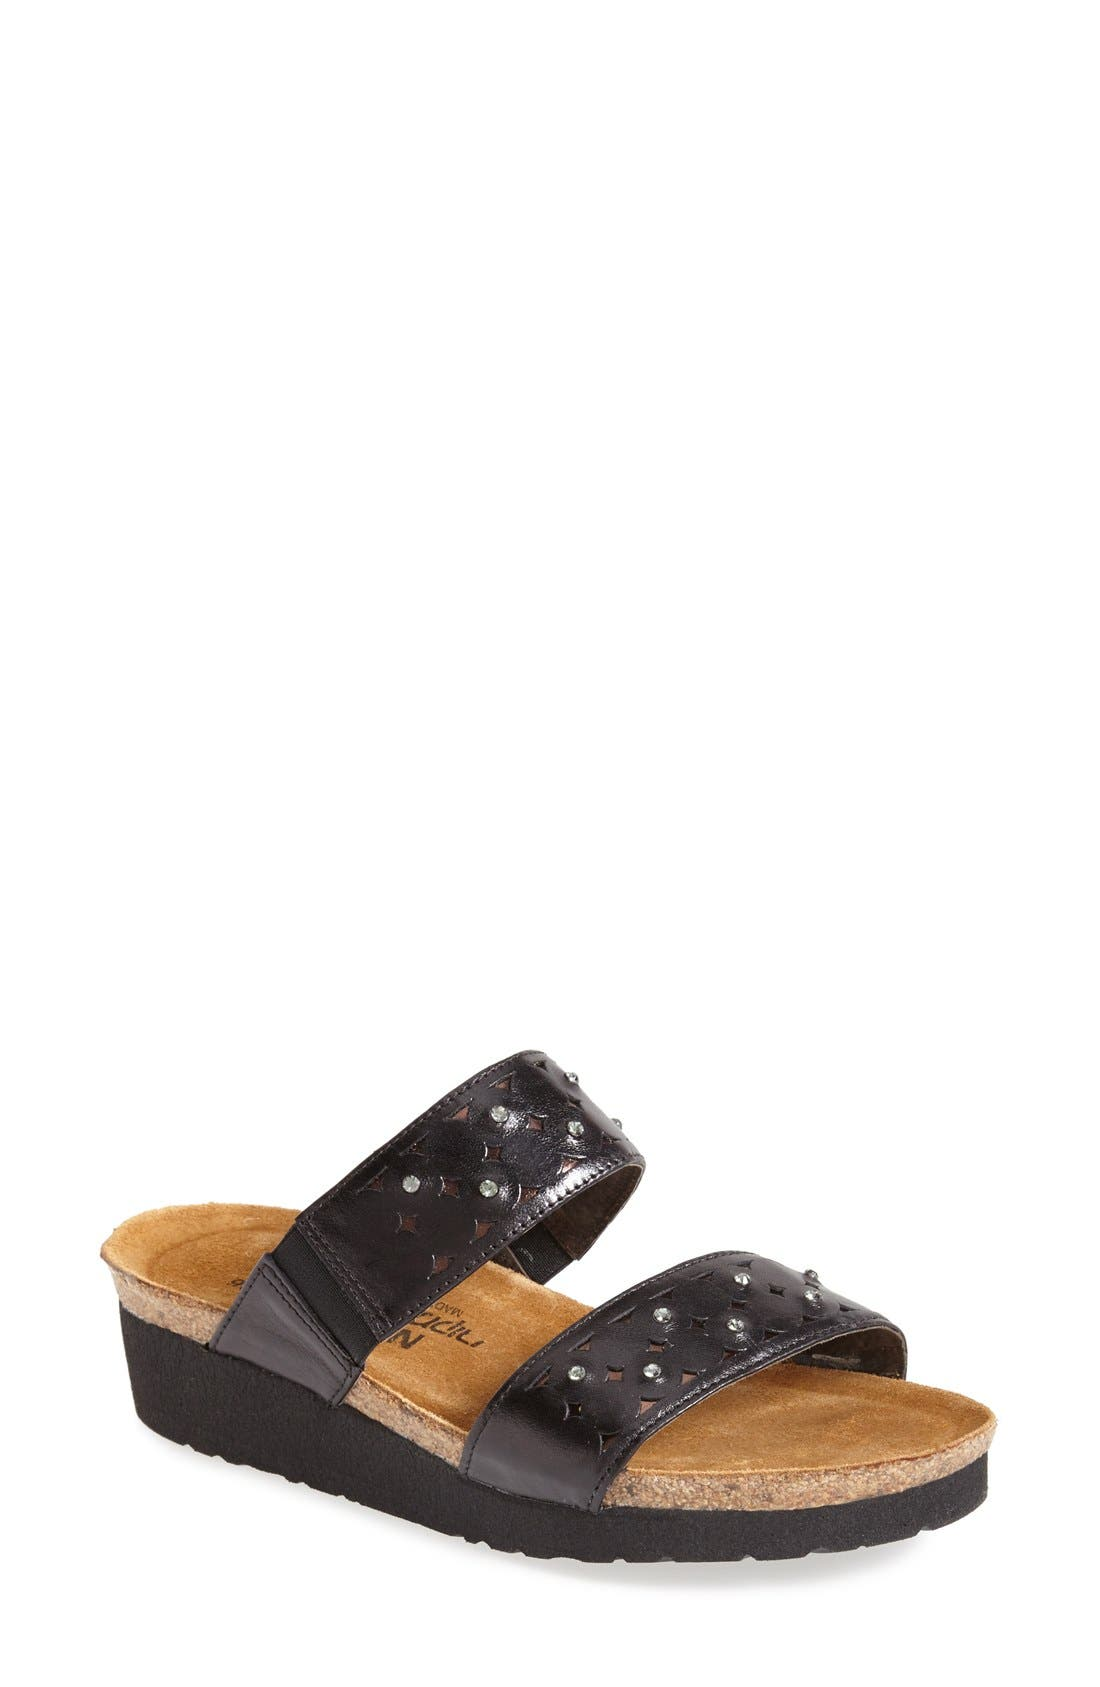 'Susan' Sandal,                             Main thumbnail 1, color,                             BLACK/ BROWN